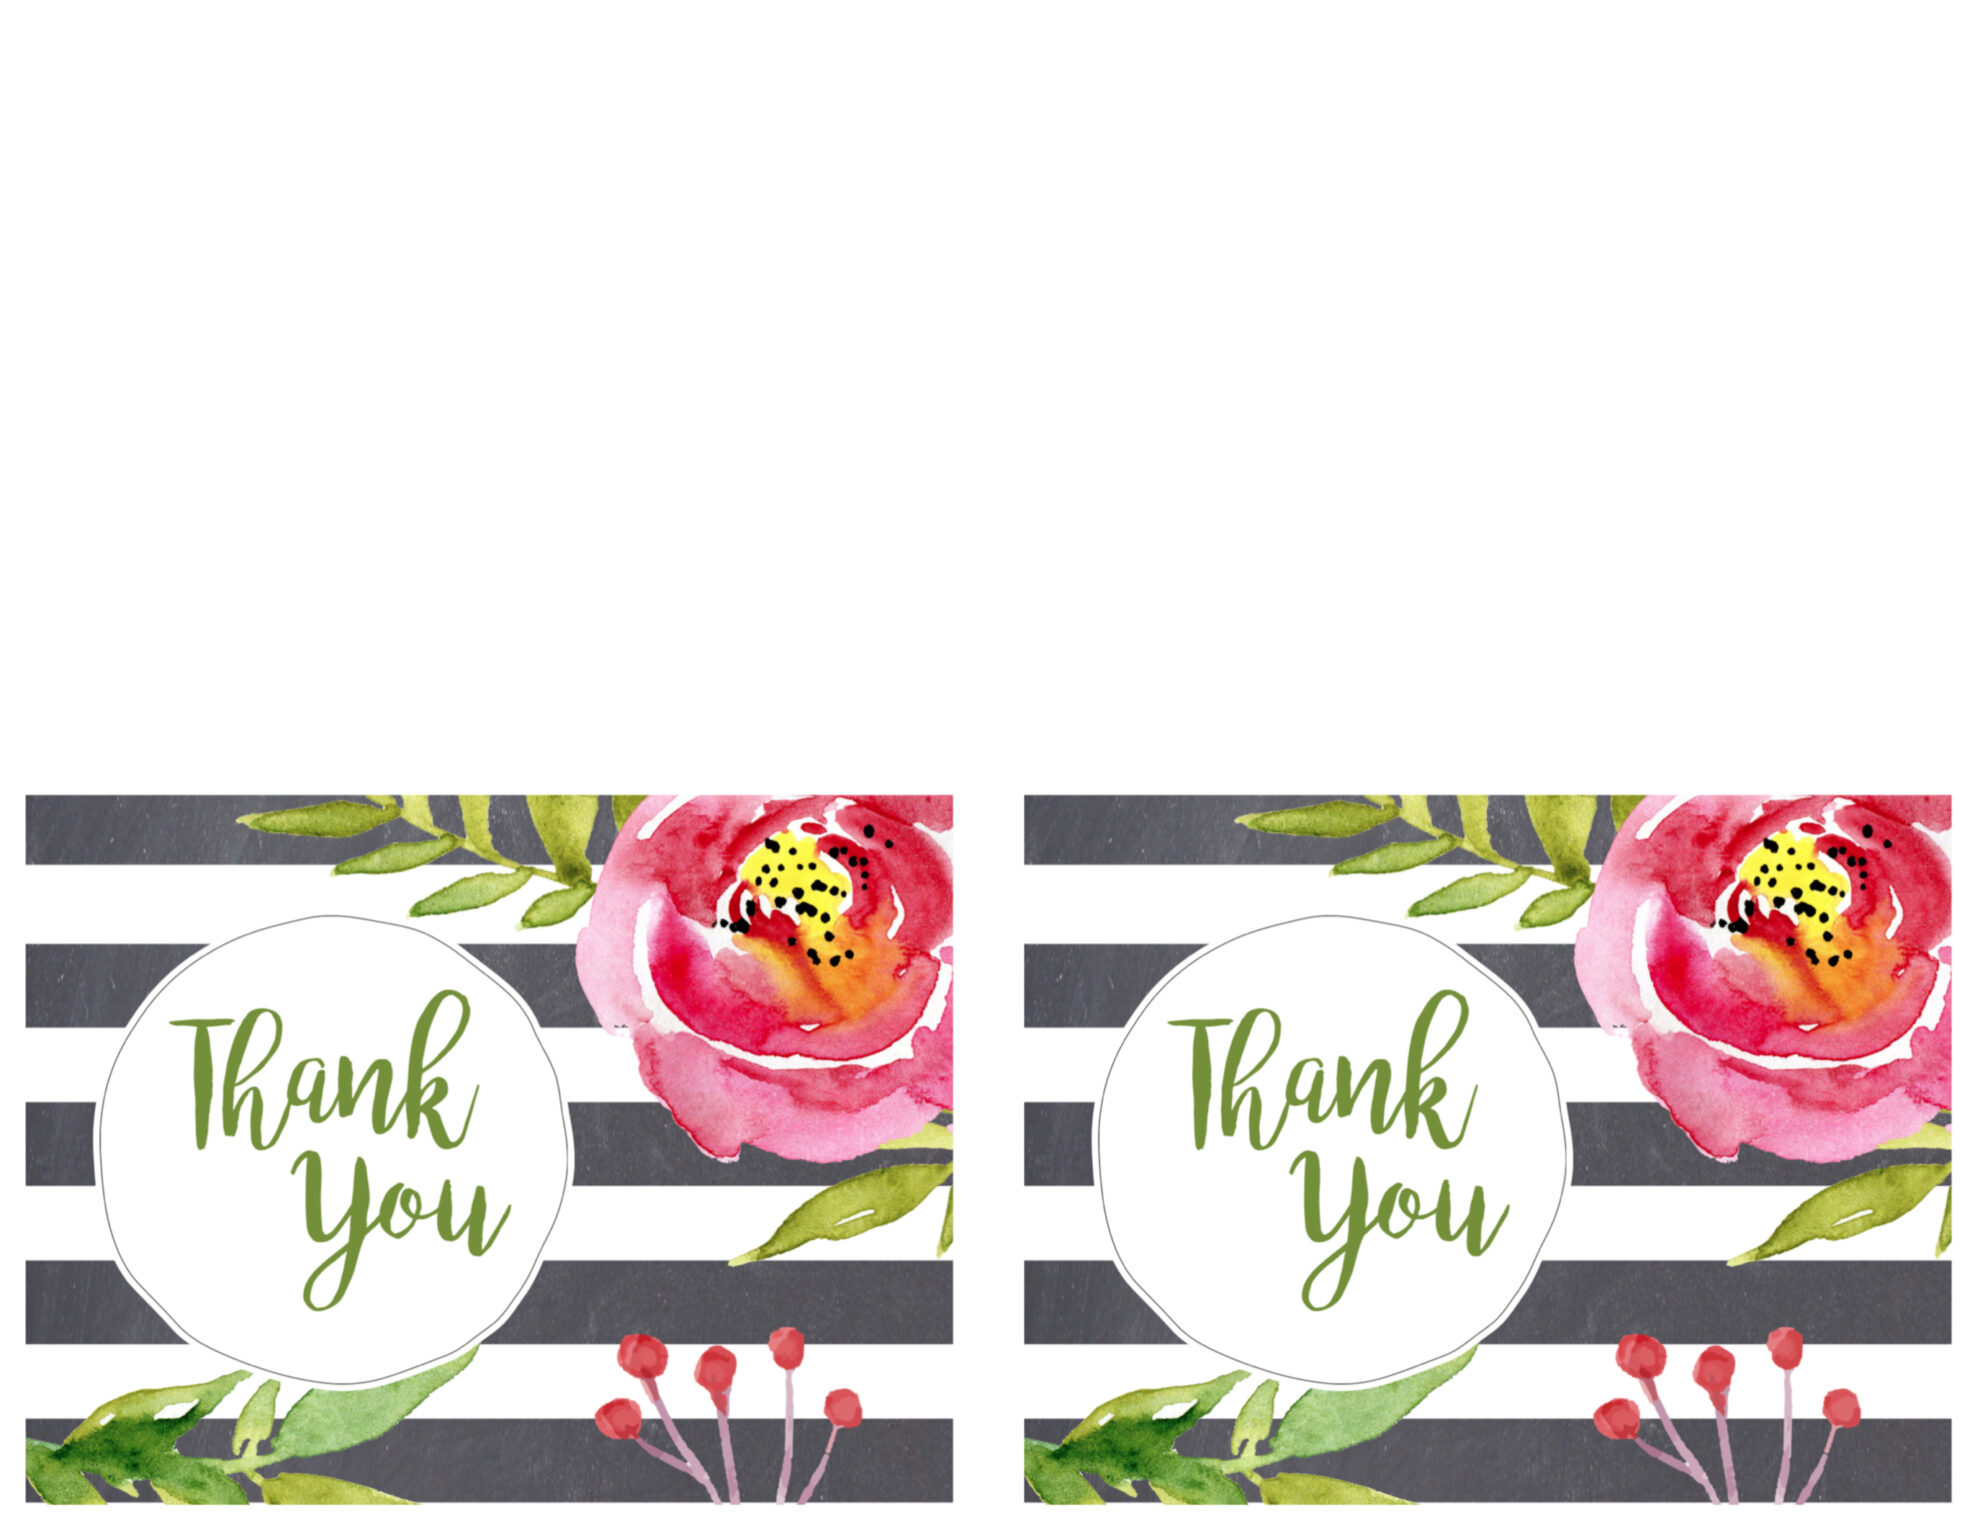 Free Printable Greeting Cards Thank You Thinking of You – Birthday Cards to Print for Free